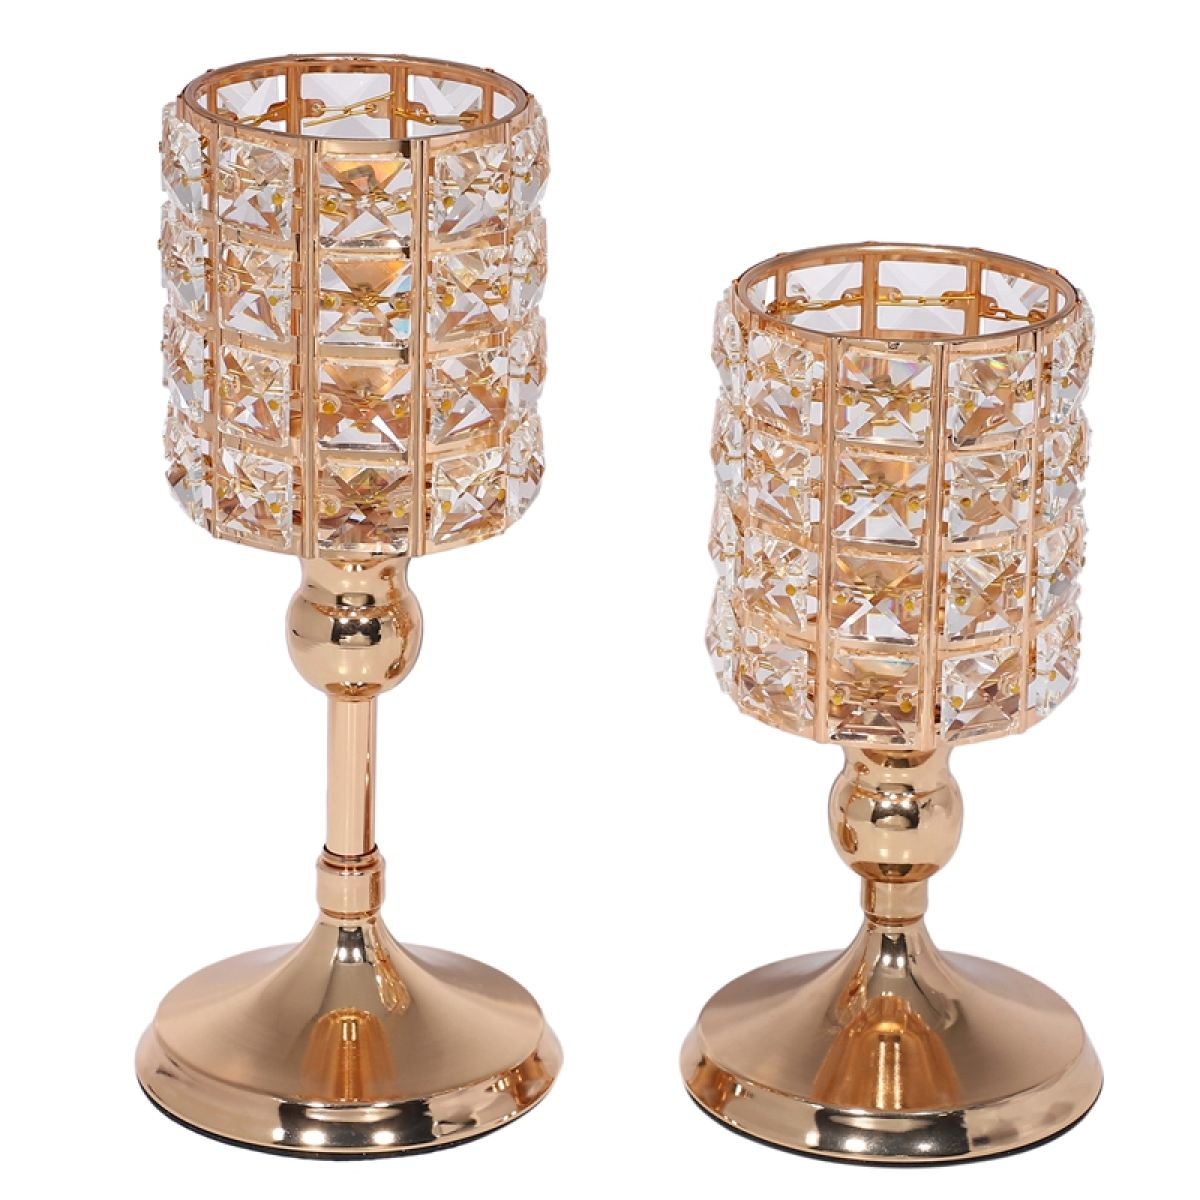 2 Pcs Crystal Candle Holders For Home Modern Decor Wedding Table Centerpieces Anniversary Celebration Gifts 8 And 10 In Lazada